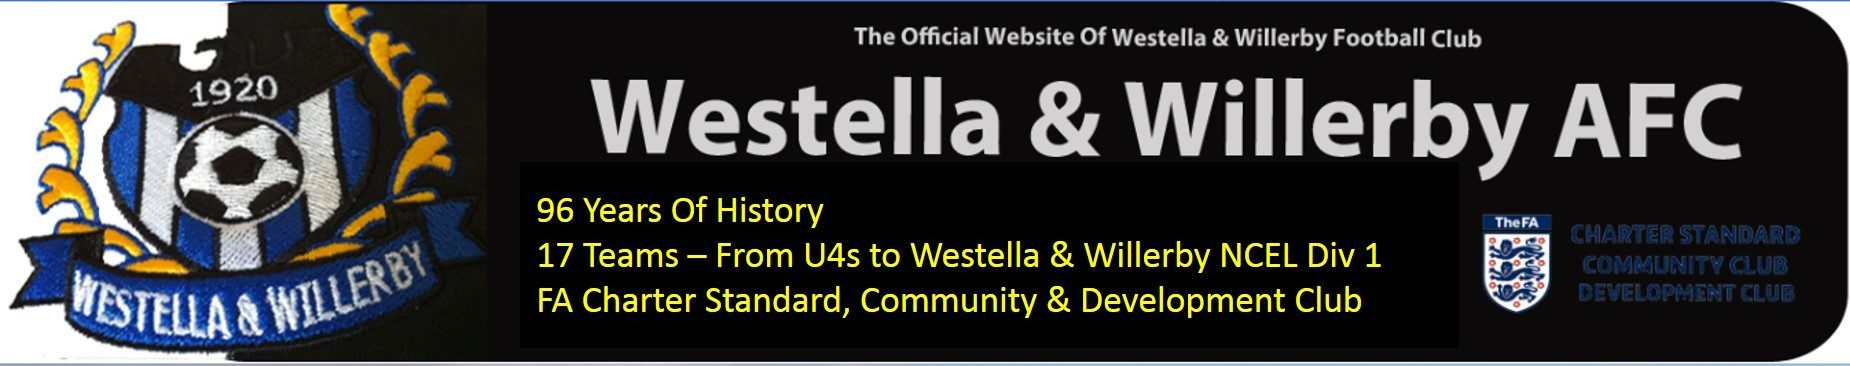 Westella & Willerby Football Club